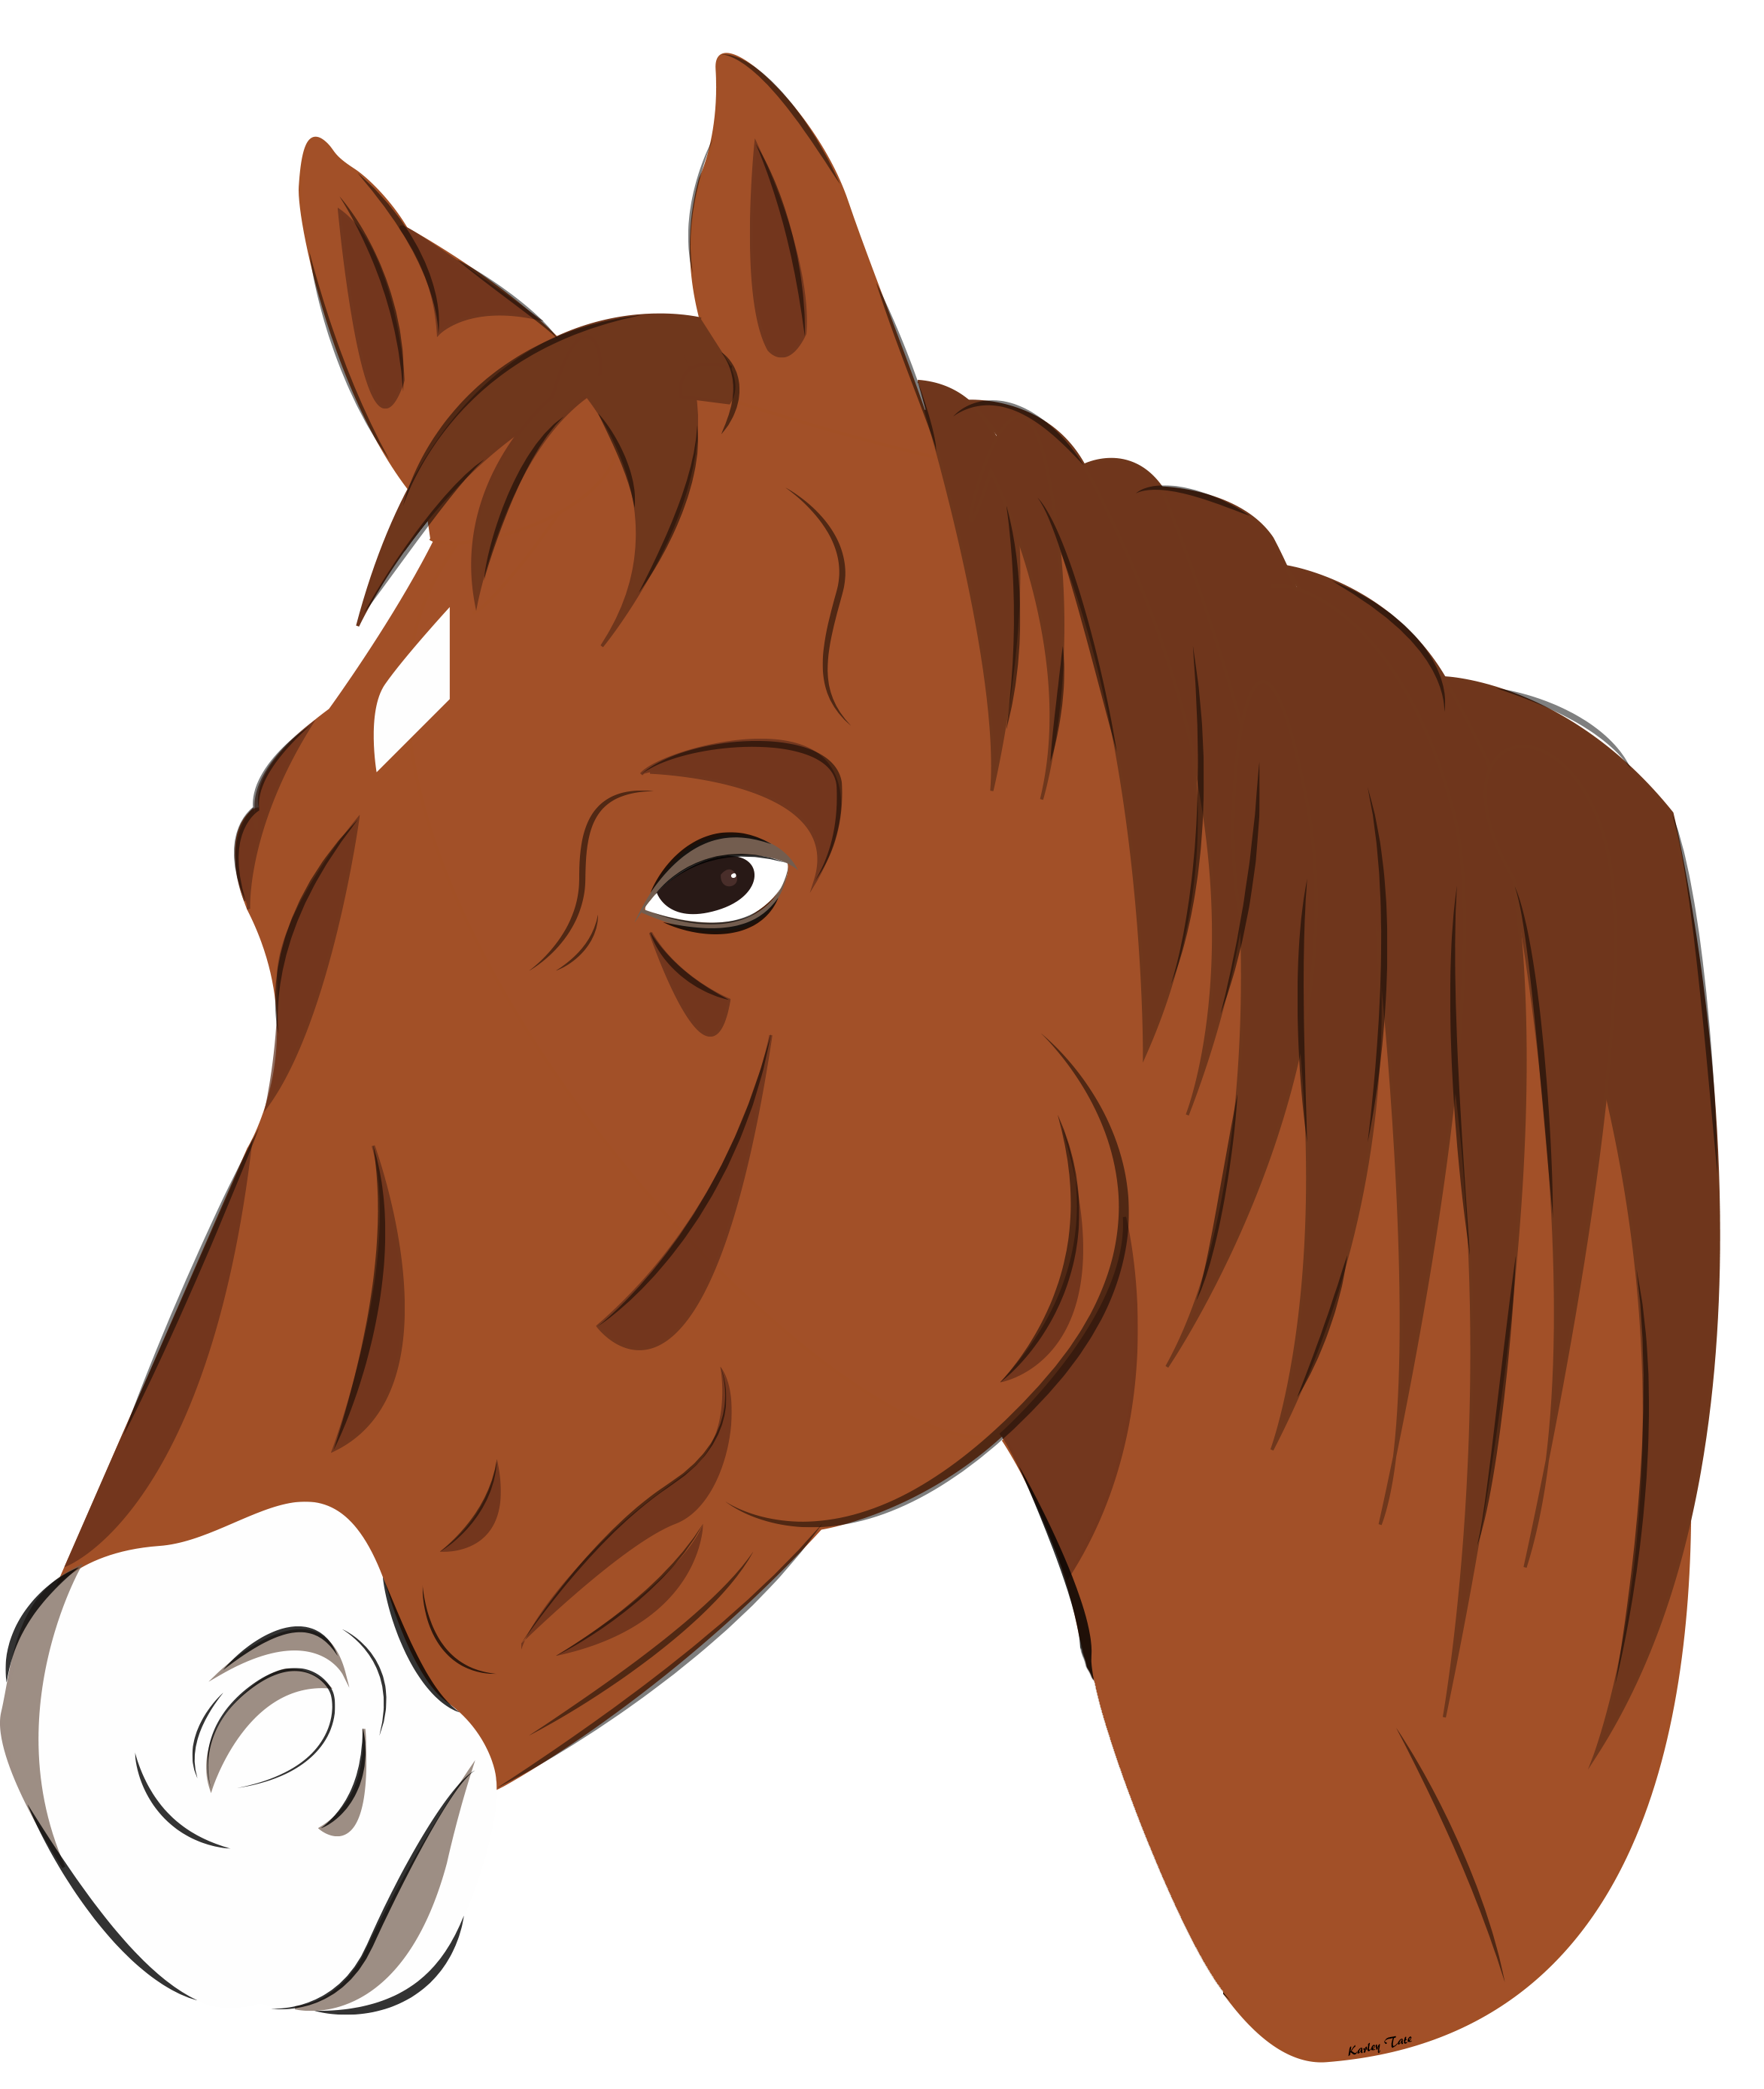 Horse Head Vector by Faunafay on DeviantArt